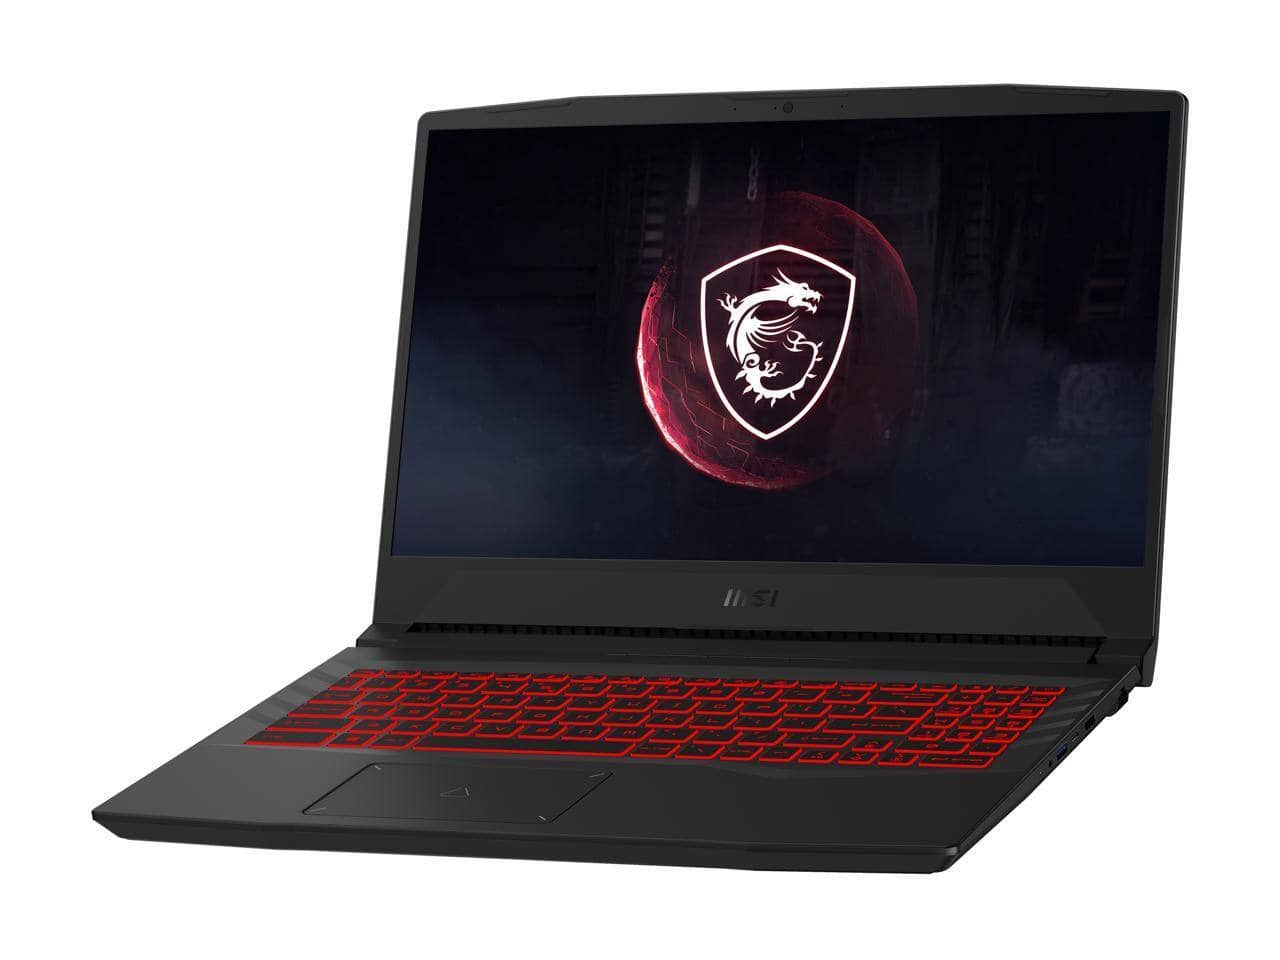 MSI Pulse GL66 11UEK-034 RTX 3060 Gaming Laptop (Plus MSI 2021 Loot Box Pack 4in1 and more ) for $1349 w/ FS after MIR